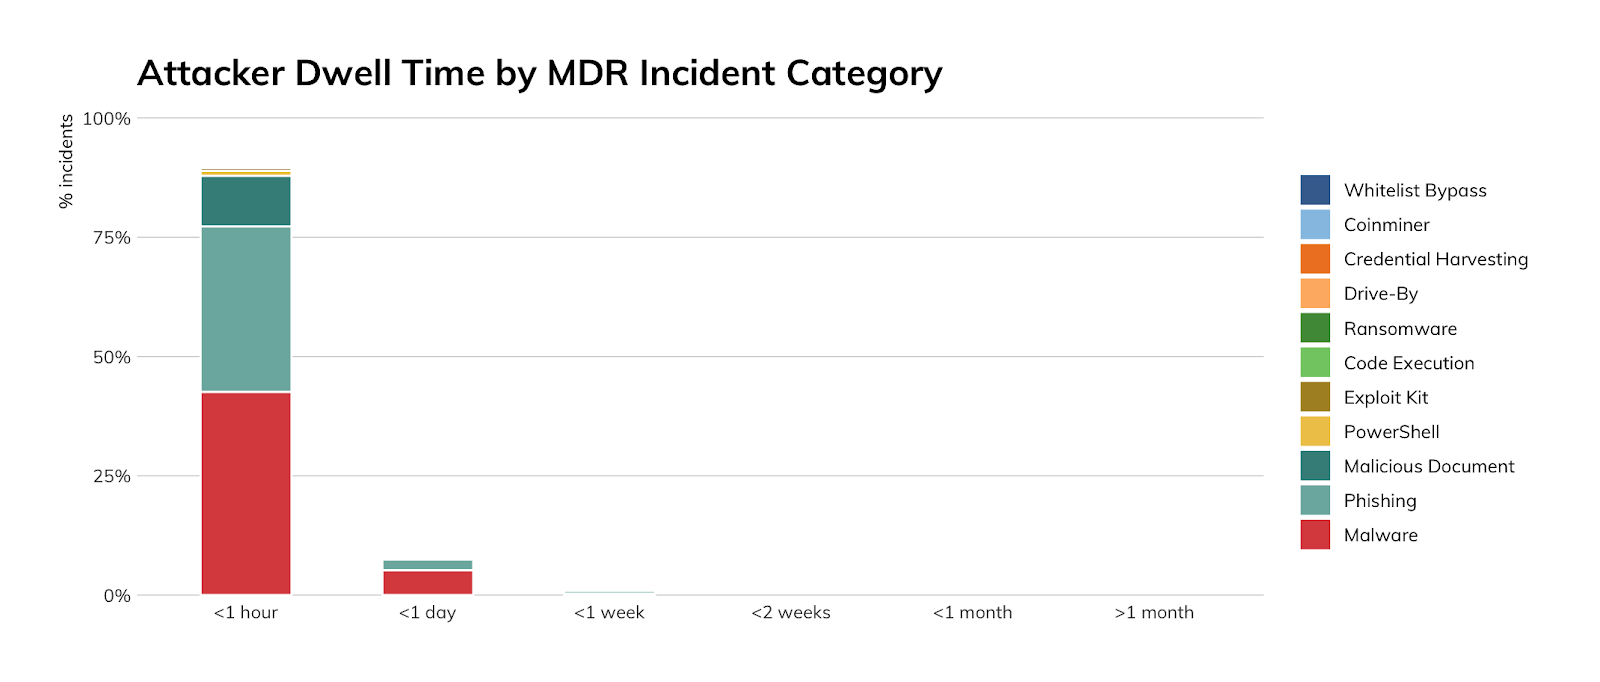 Figure 11: Attacker Dwell Time by MDR Incident Category